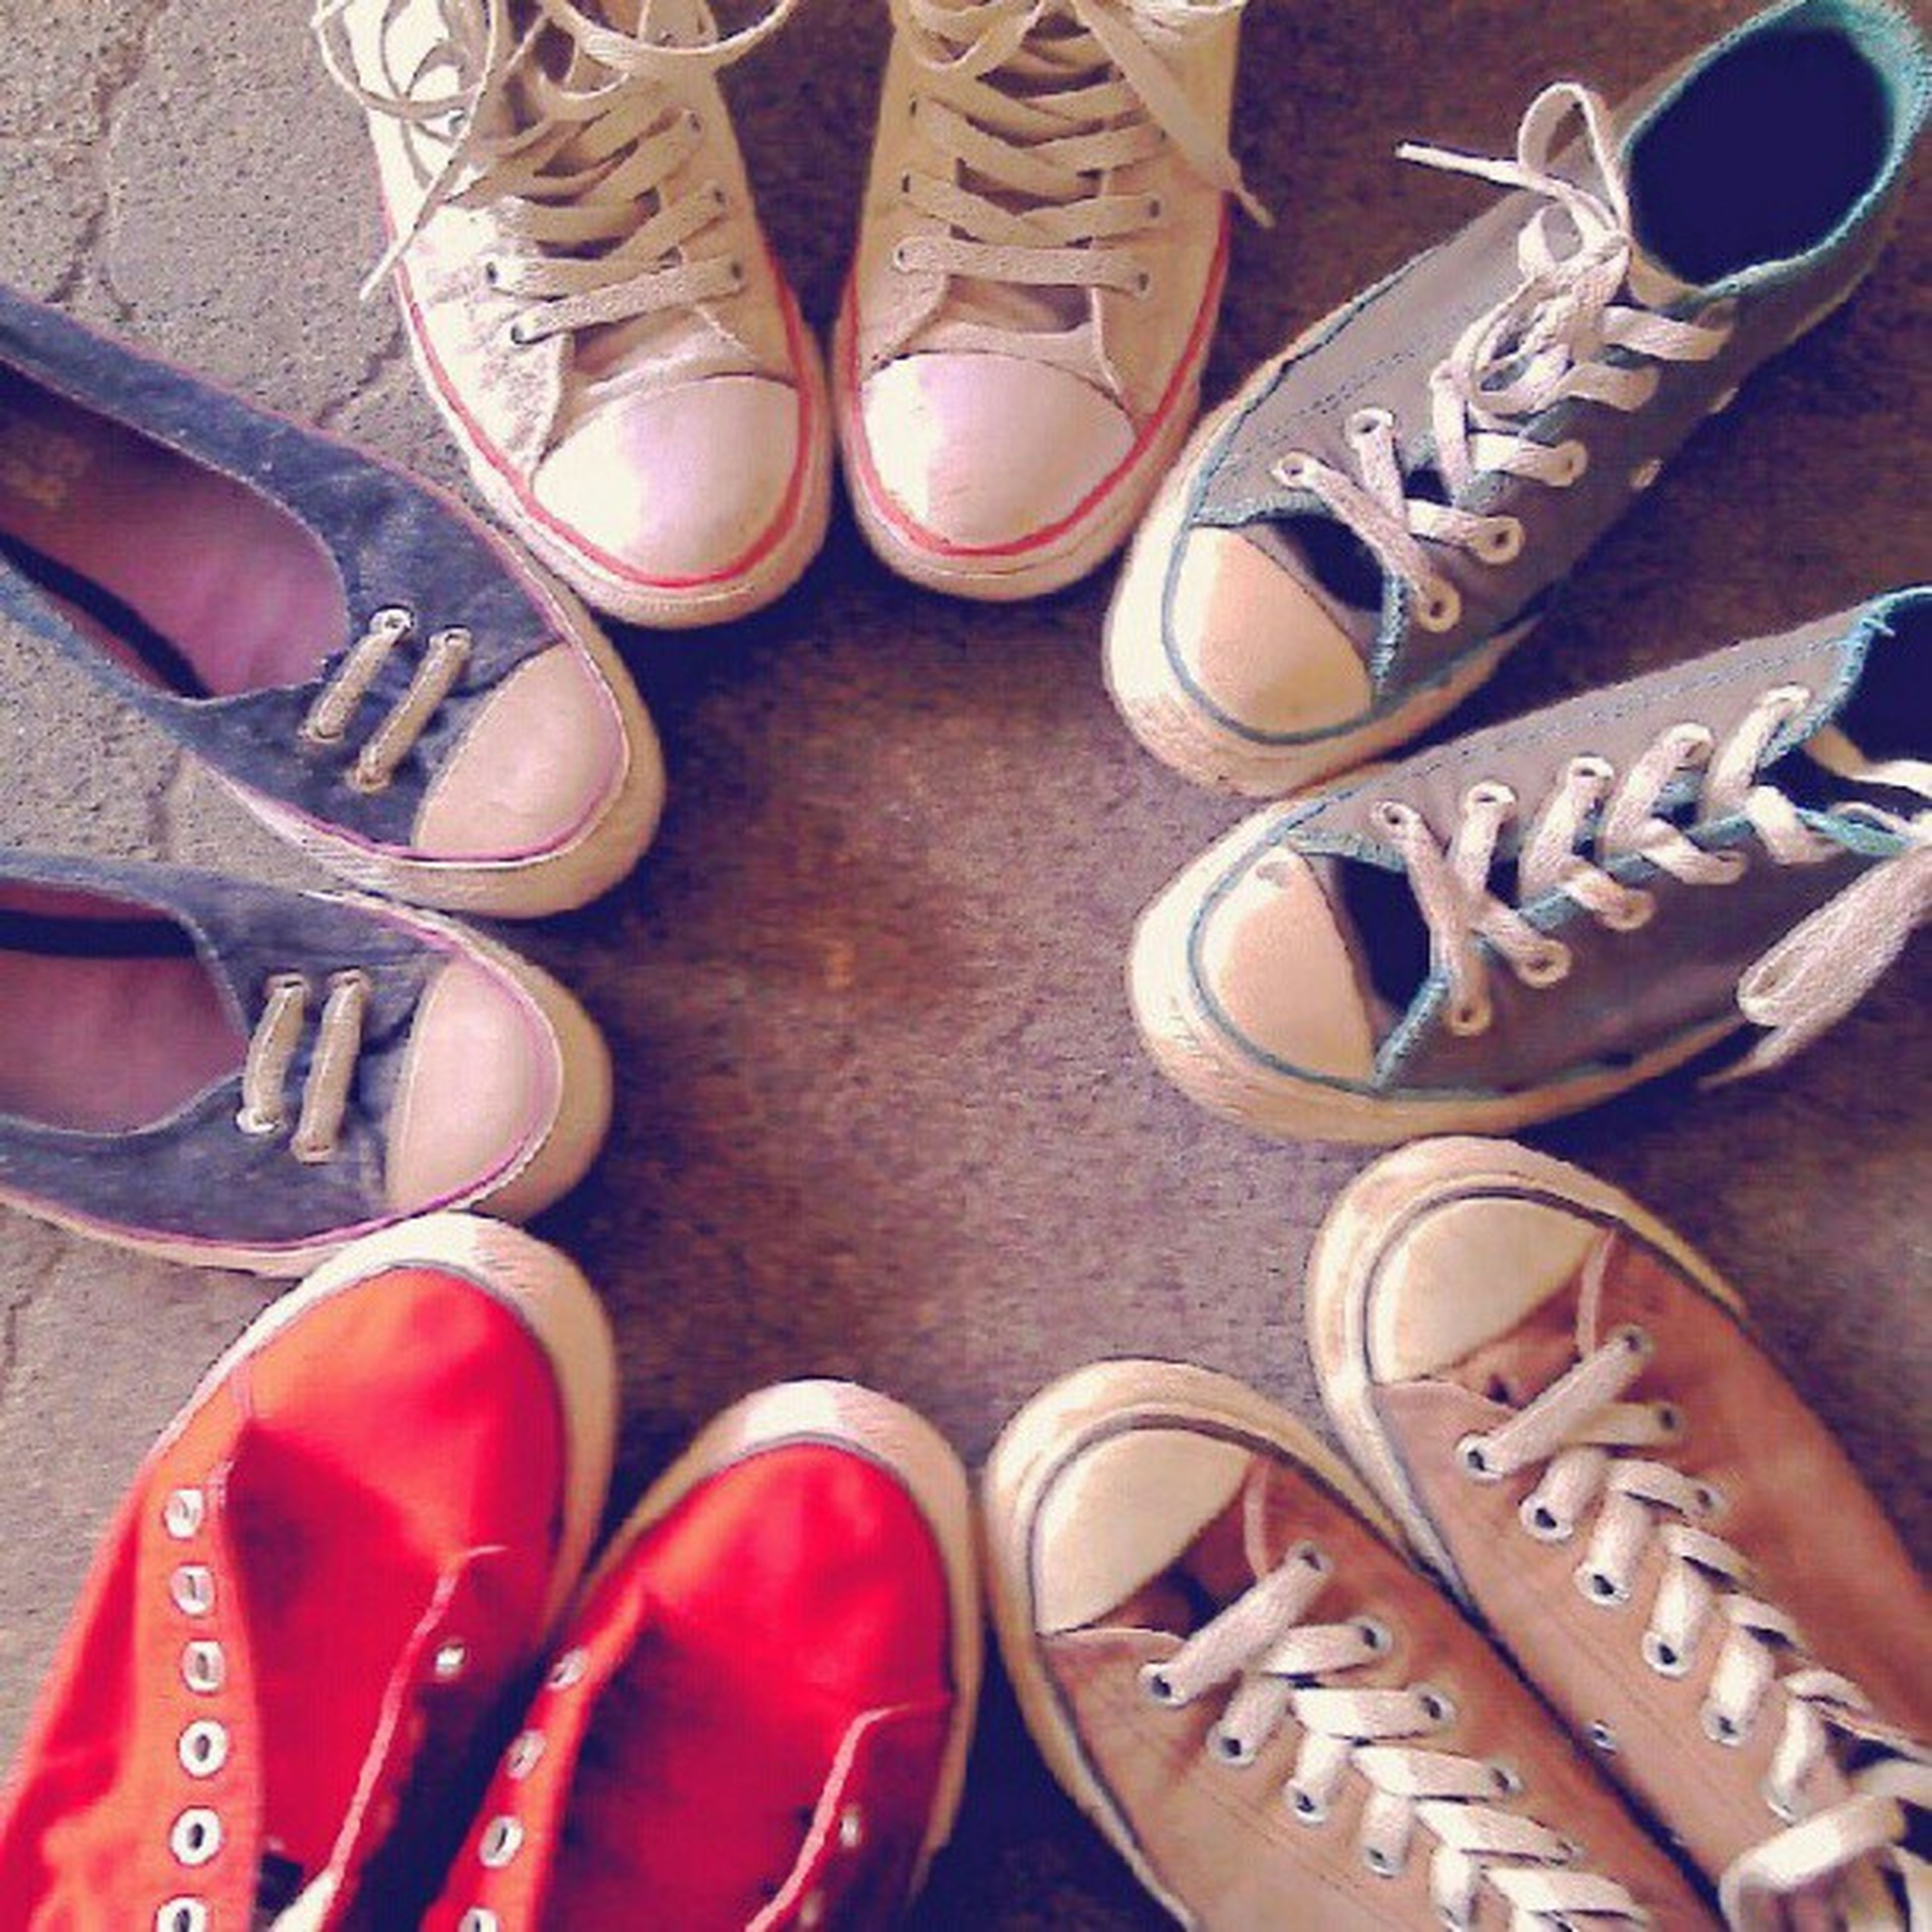 shoe, variation, low section, person, high angle view, footwear, pair, fashion, indoors, choice, close-up, large group of objects, abundance, part of, still life, directly above, shoelace, in a row, arrangement